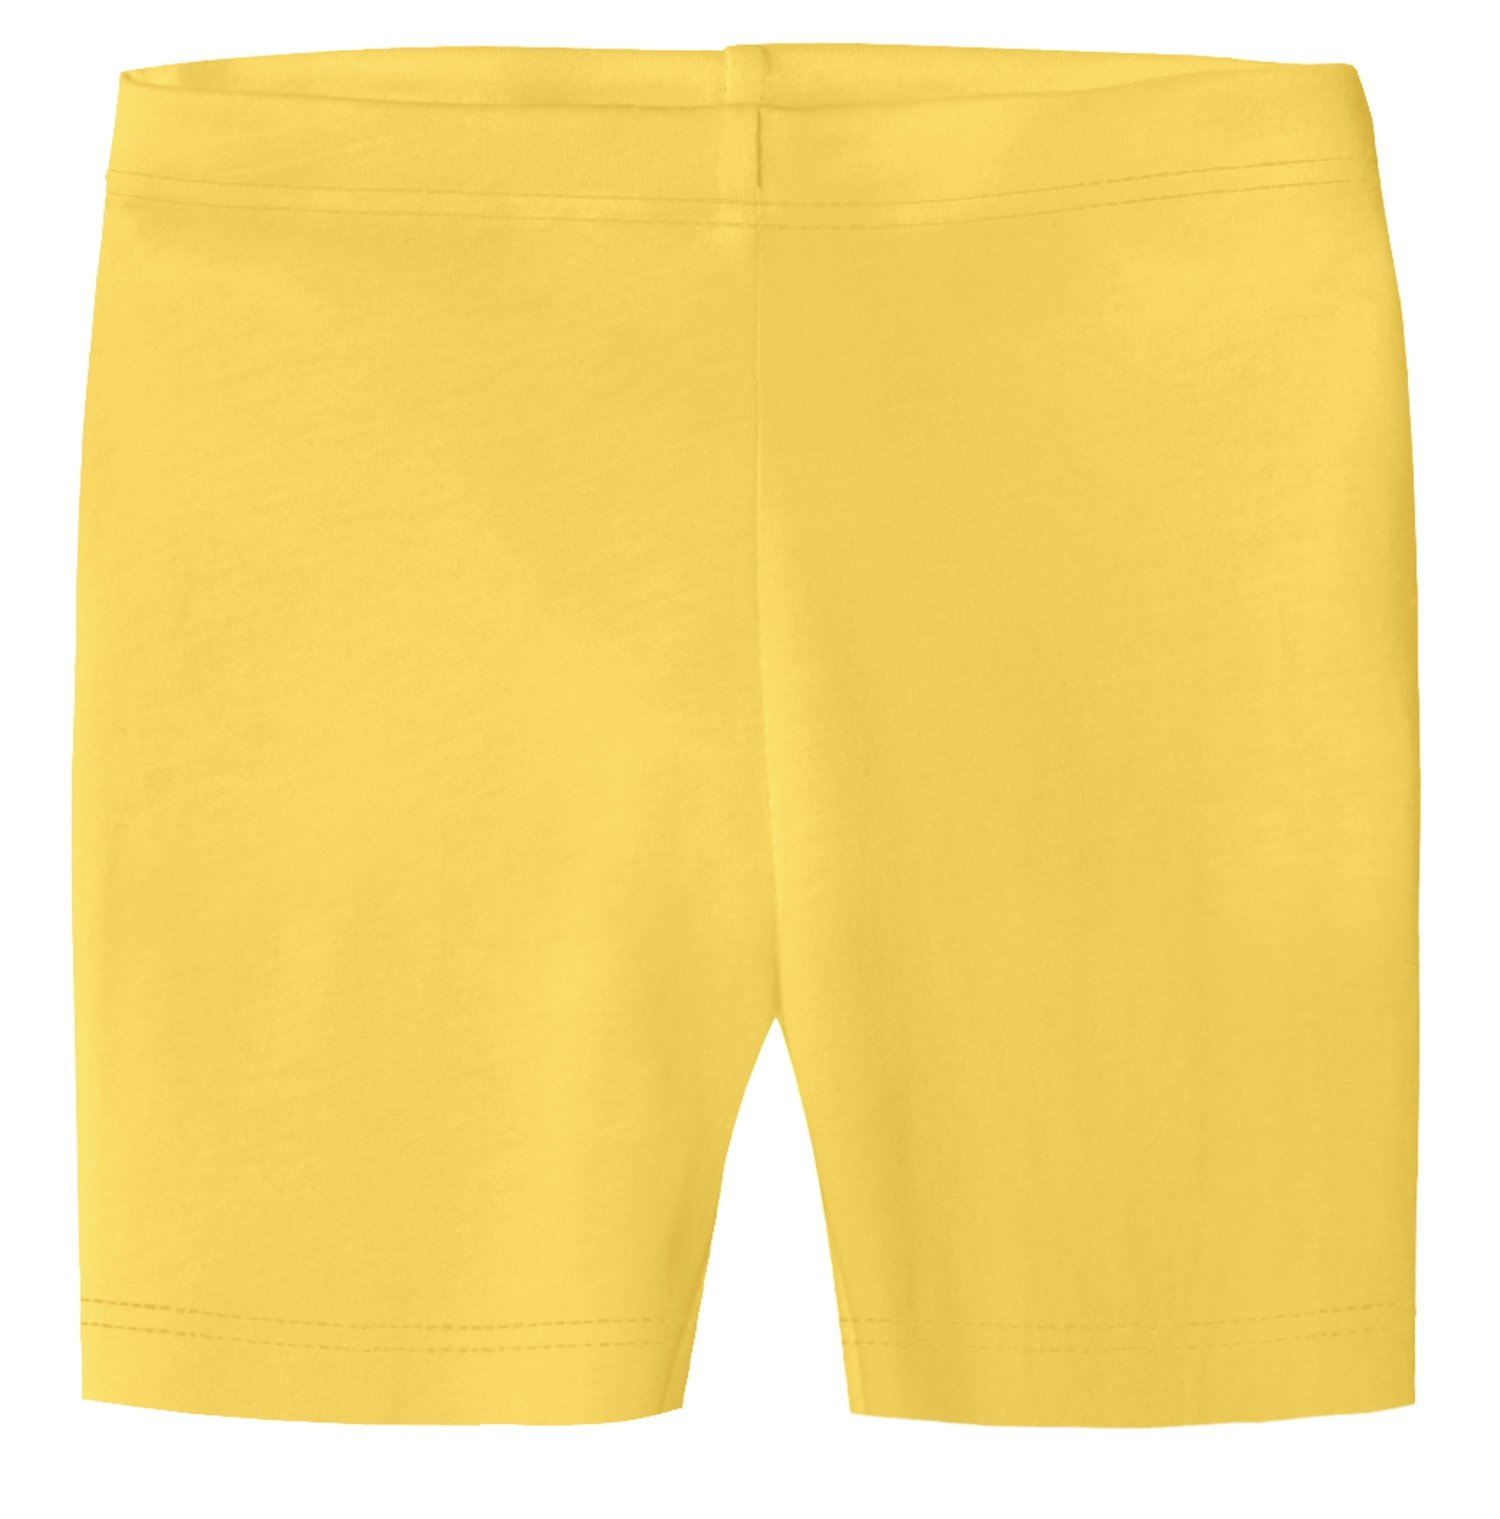 City Threads Little Girls Underwear Bike Shorts in All Cotton Perfect for SPD and Sensitive Skin Sports Dance School Uniform, Yellow, 2T